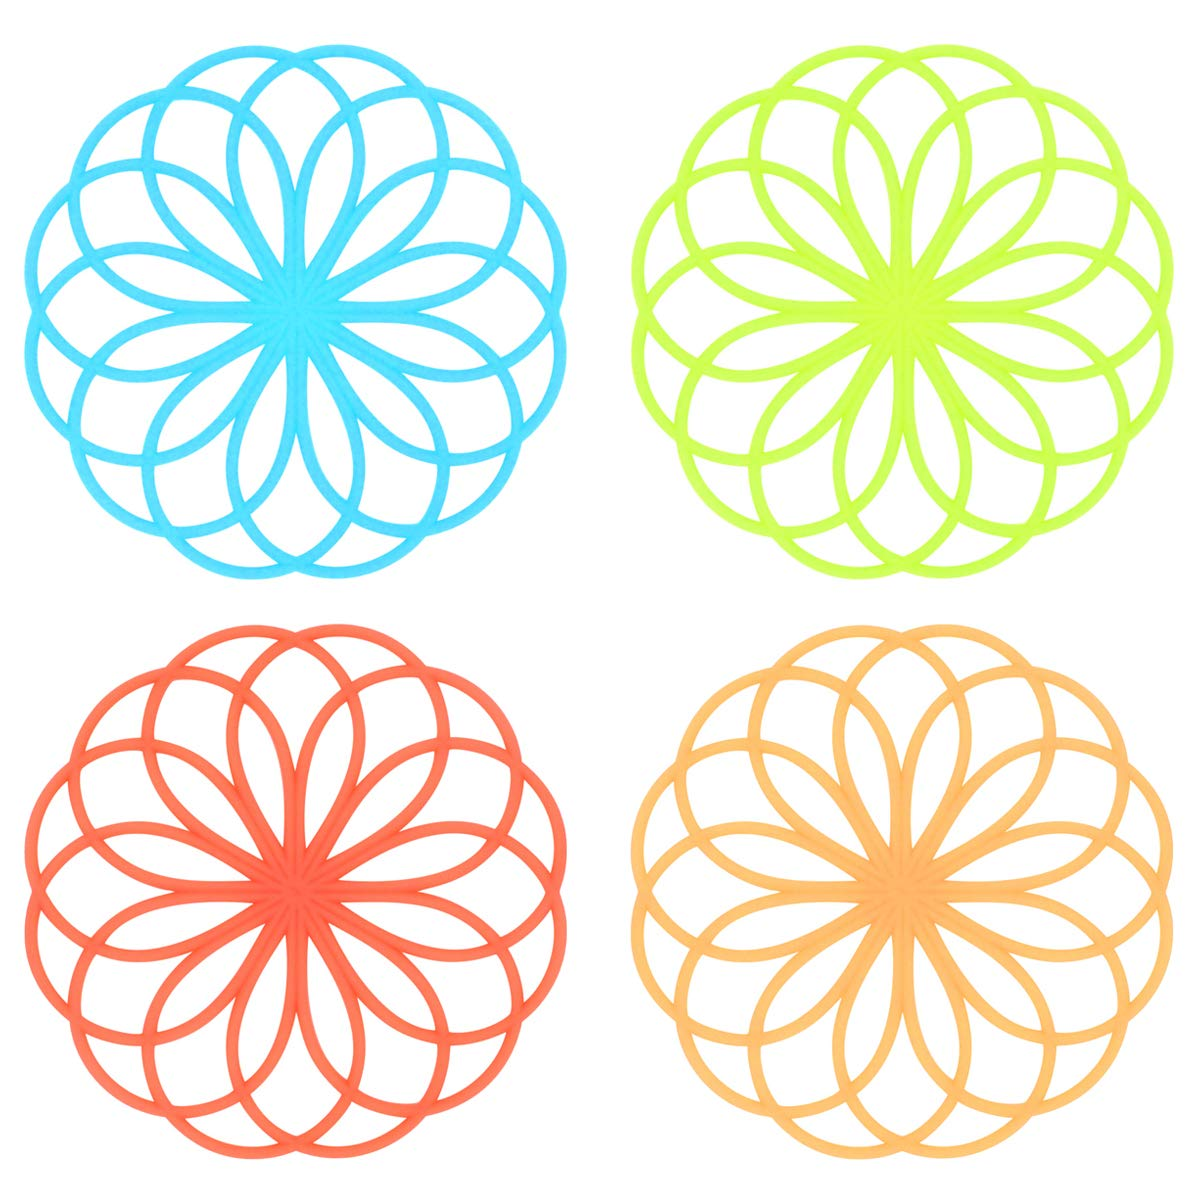 Silicone Multi-Use Hollow Flower Trivet Mat - Insulated Flexible Durable Non Slip Coasters Hot Pads - 7.8 inch - 4 Colors Set.